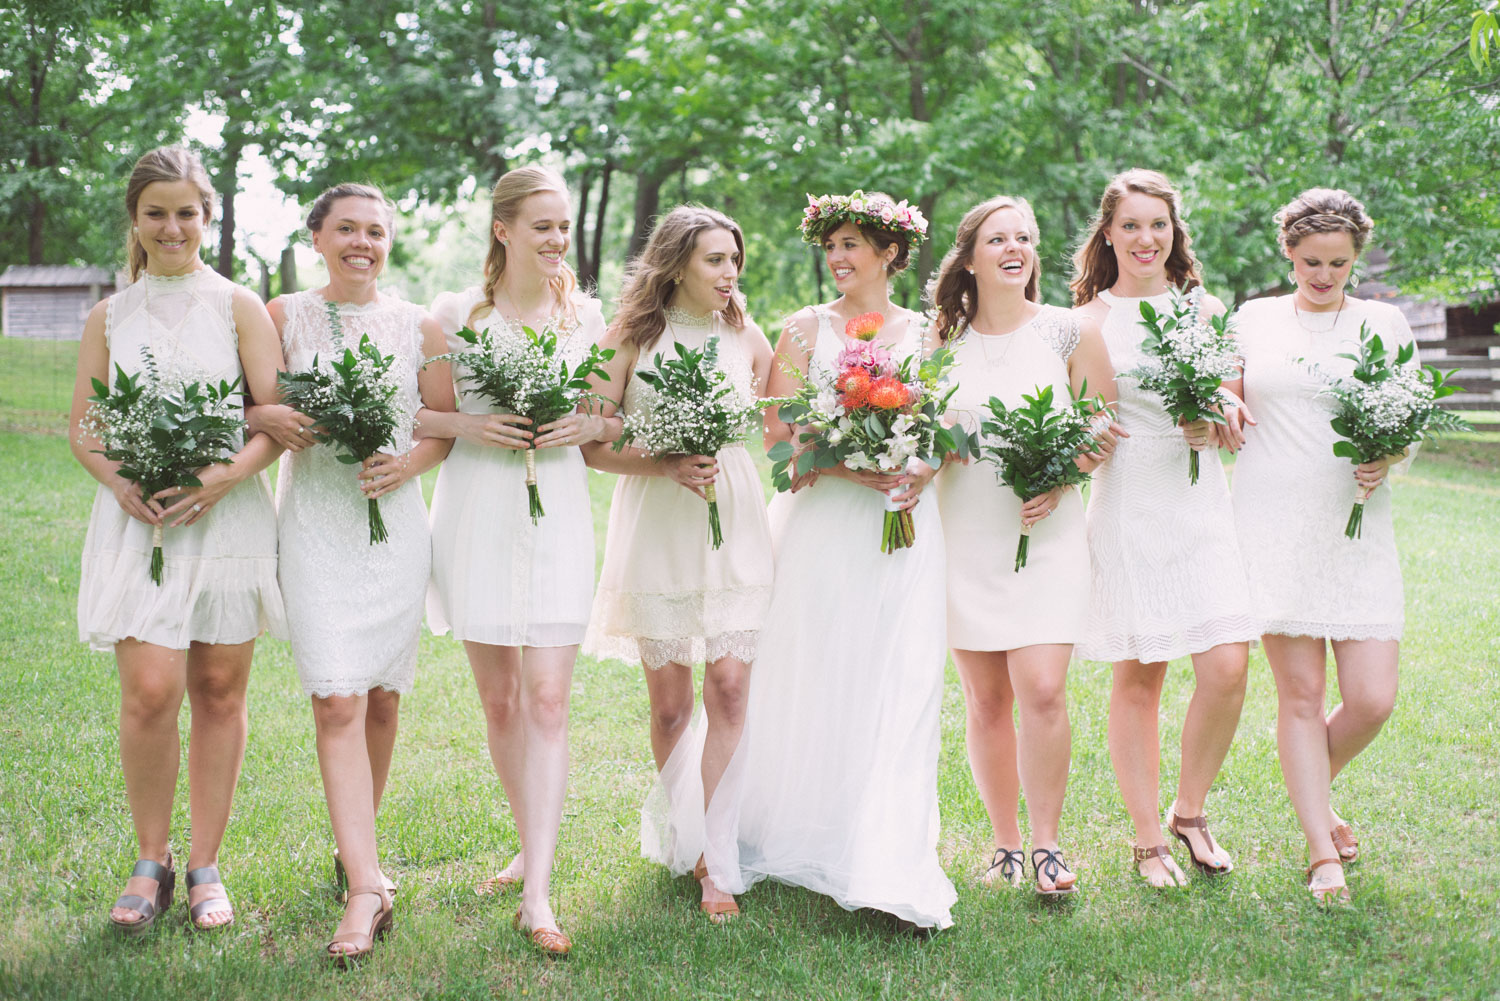 Wedding Ceremony Planning | A bride and her squad